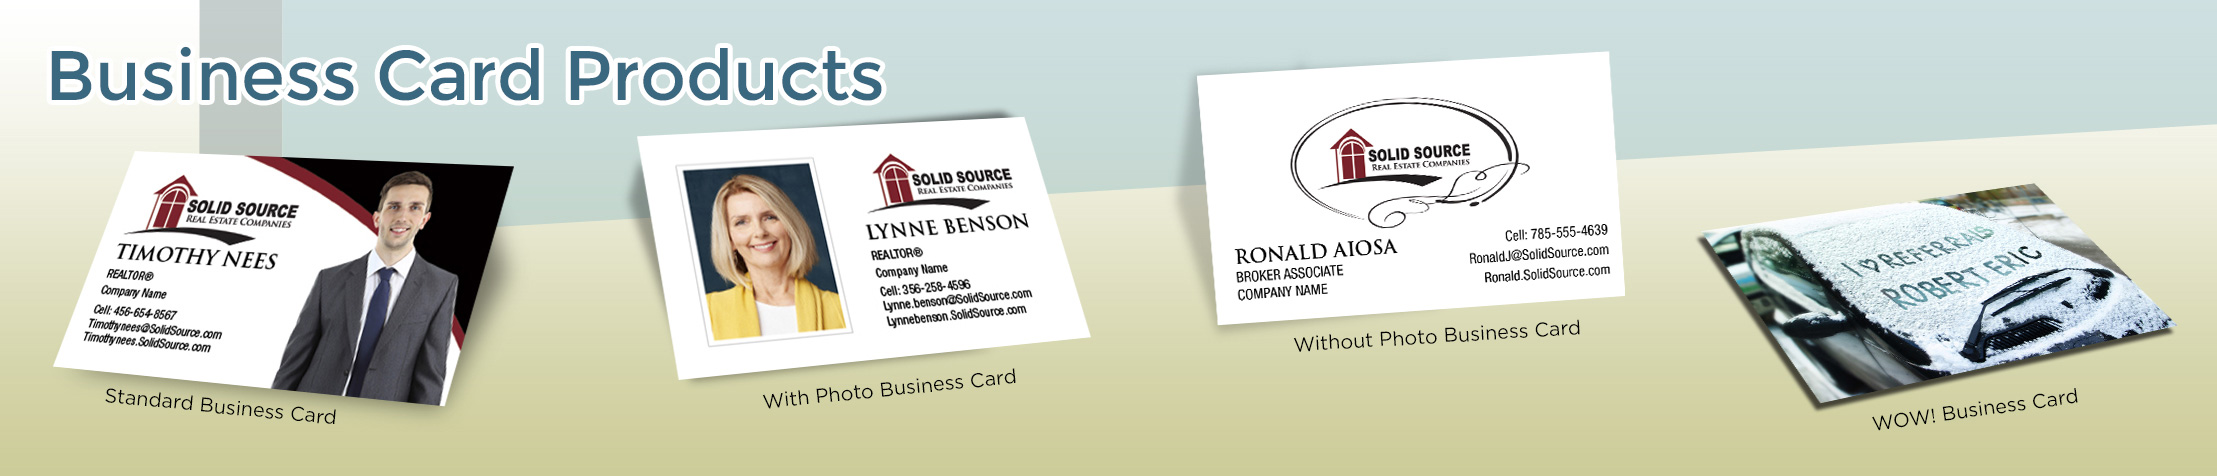 Solid Source Real Estate Business Card Products - Solid Source - Unique, Custom Business Cards Printed on Quality Stock with Creative Designs for Realtors | BestPrintBuy.com